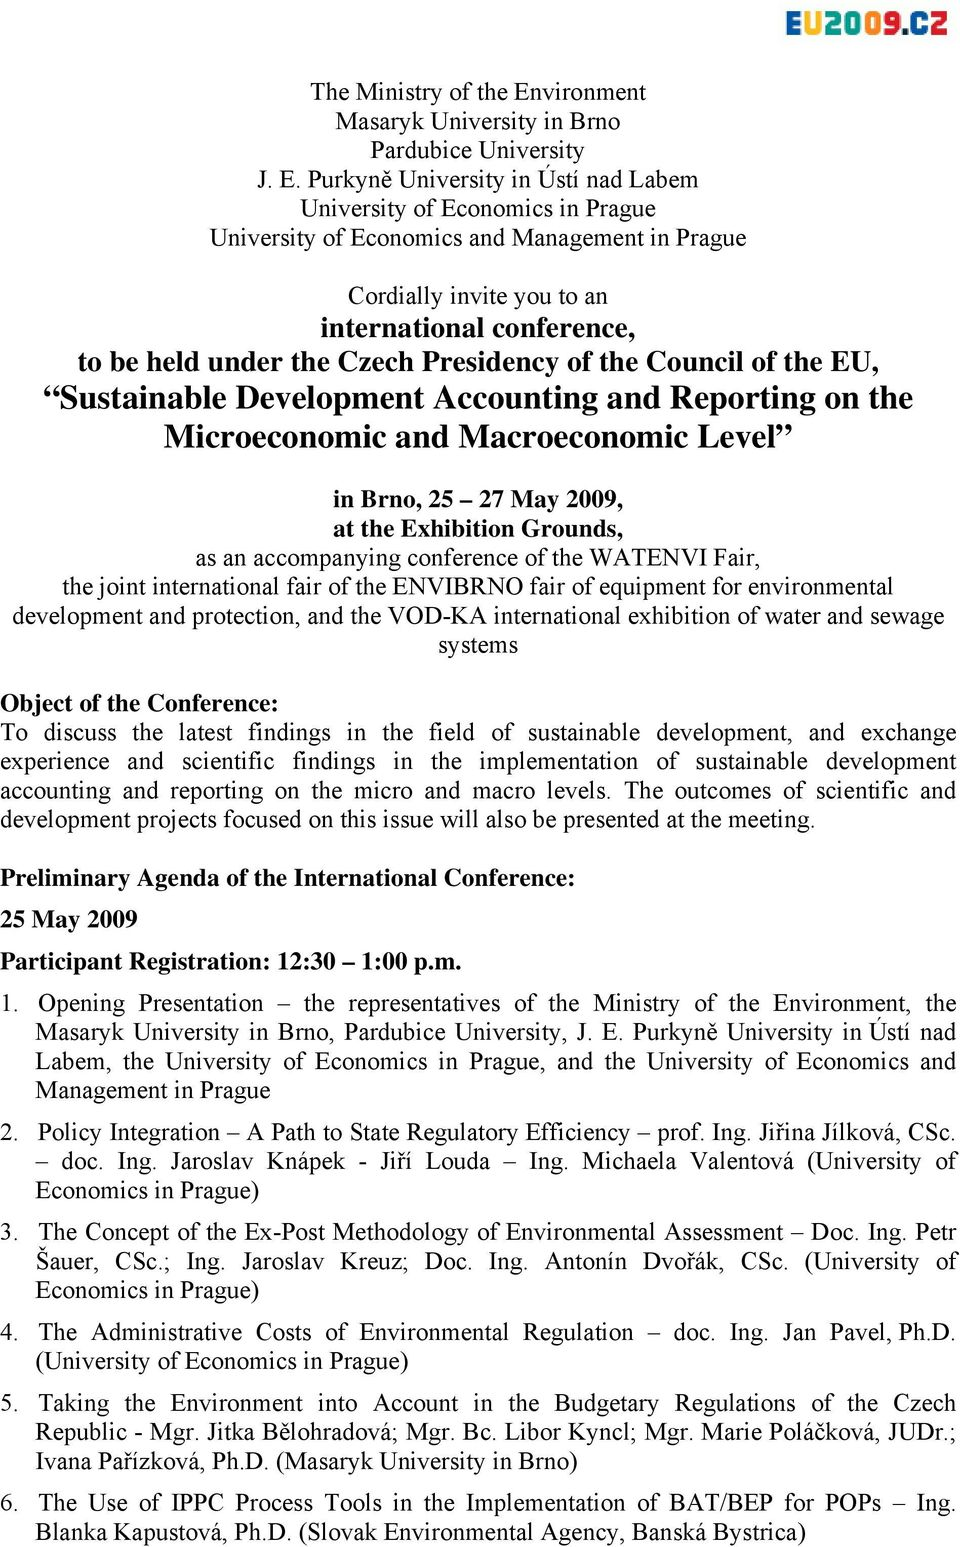 Purkyně University in Ústí nad Labem University of Economics in Prague University of Economics and Management in Prague Cordially invite you to an international conference, to be held under the Czech